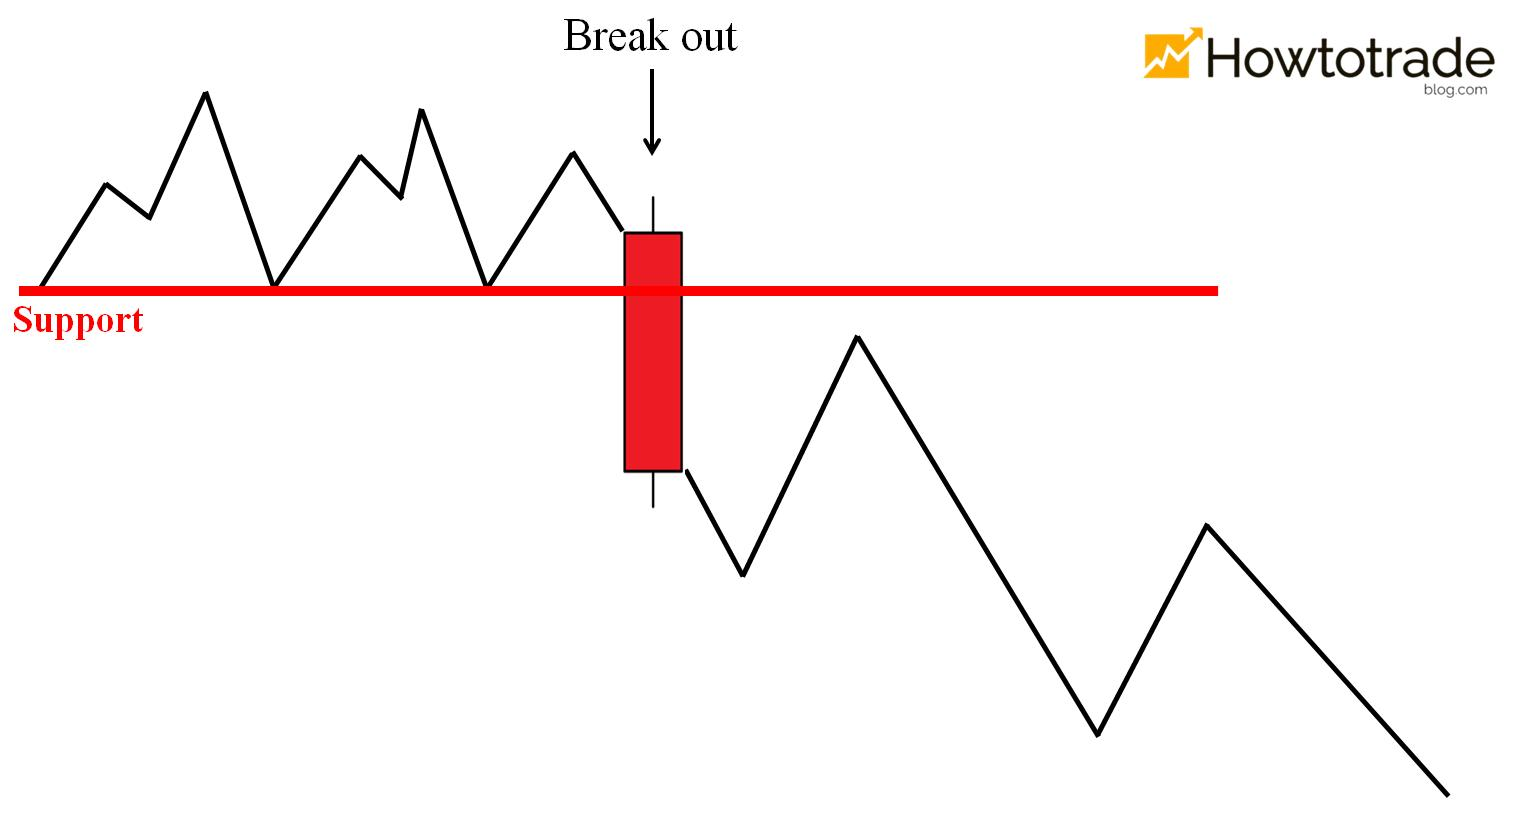 The price breaks out of the support and goes down, creating a downtrend